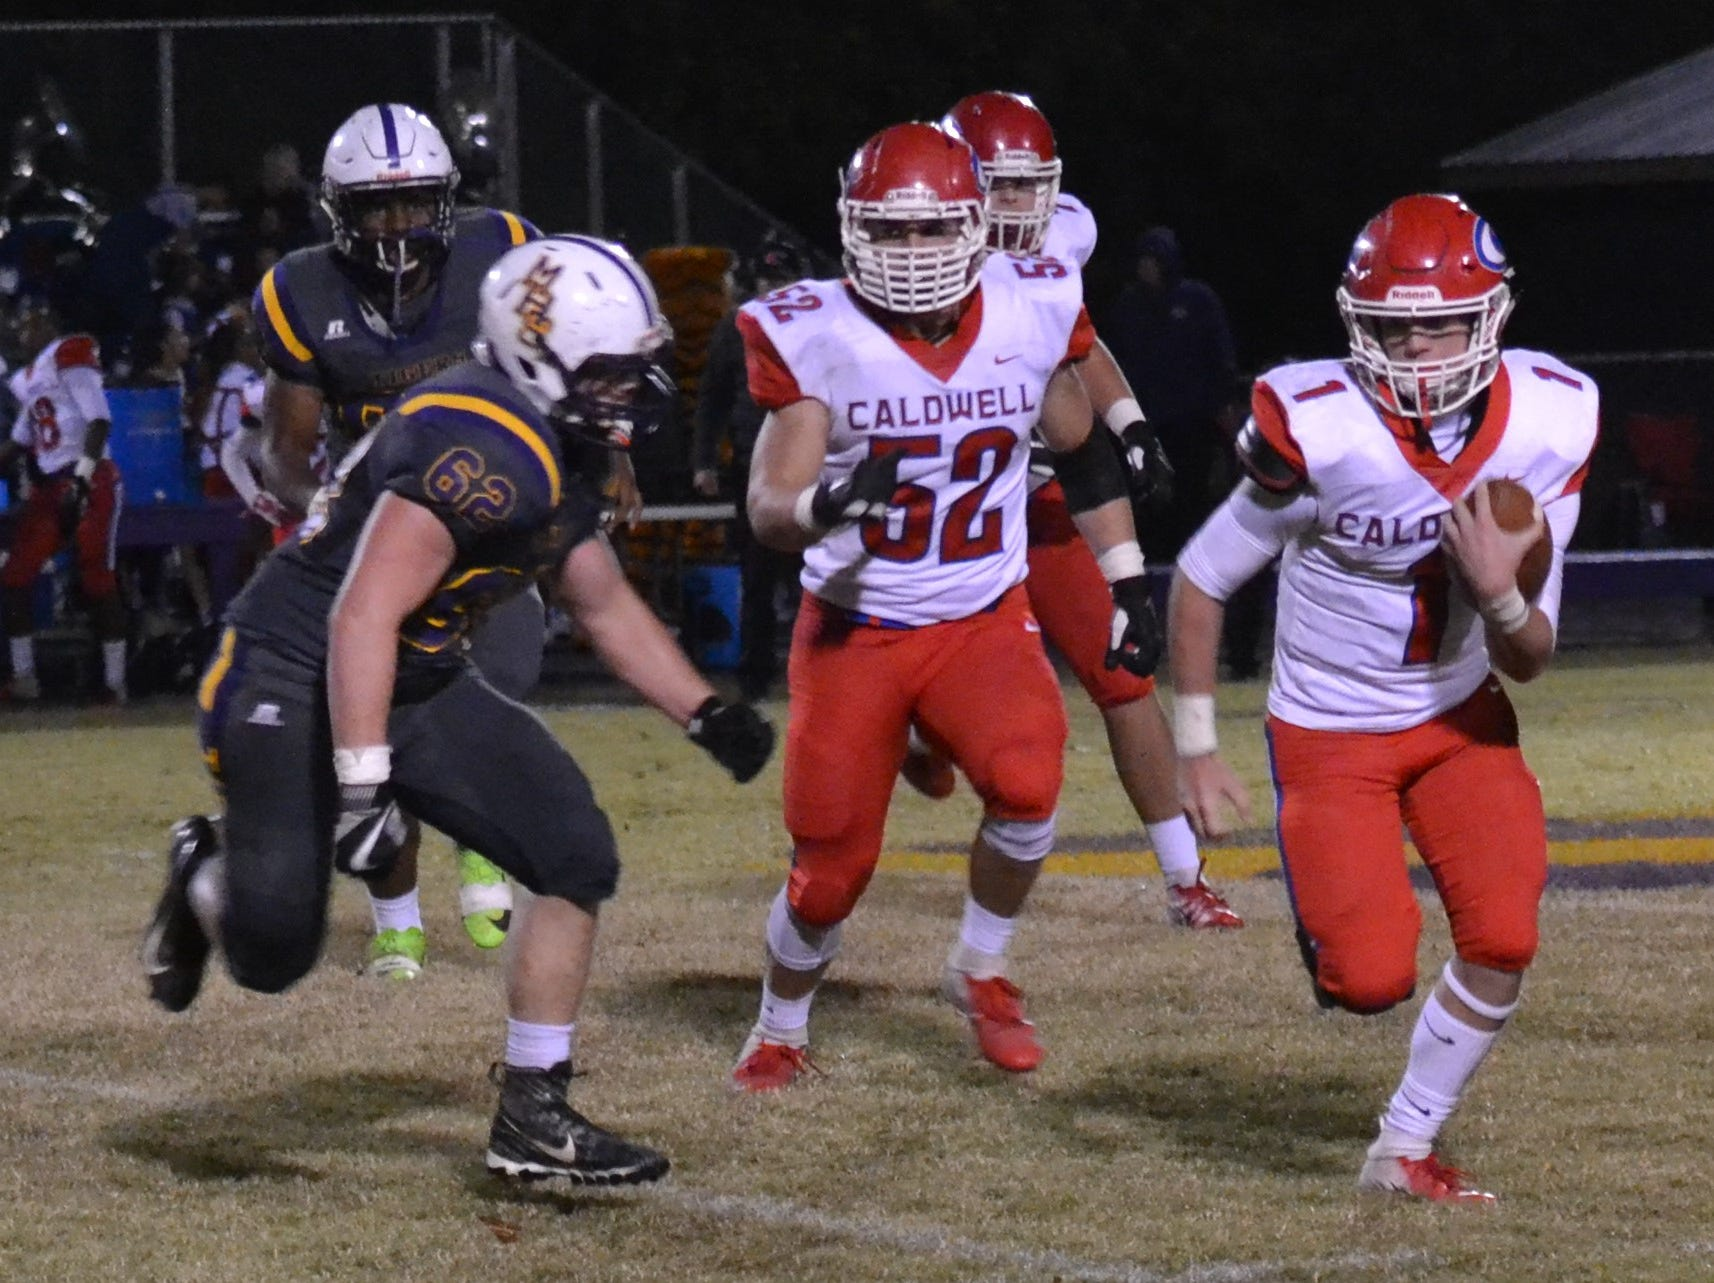 Caldwell quarterback Jaron Townsend (1) calls his own number as he tries to elude Tigers defender Gavin Laird (62). Marksville and Caldwell met in the regular season finale Friday night with Caldwell edging Marksville 13-8.